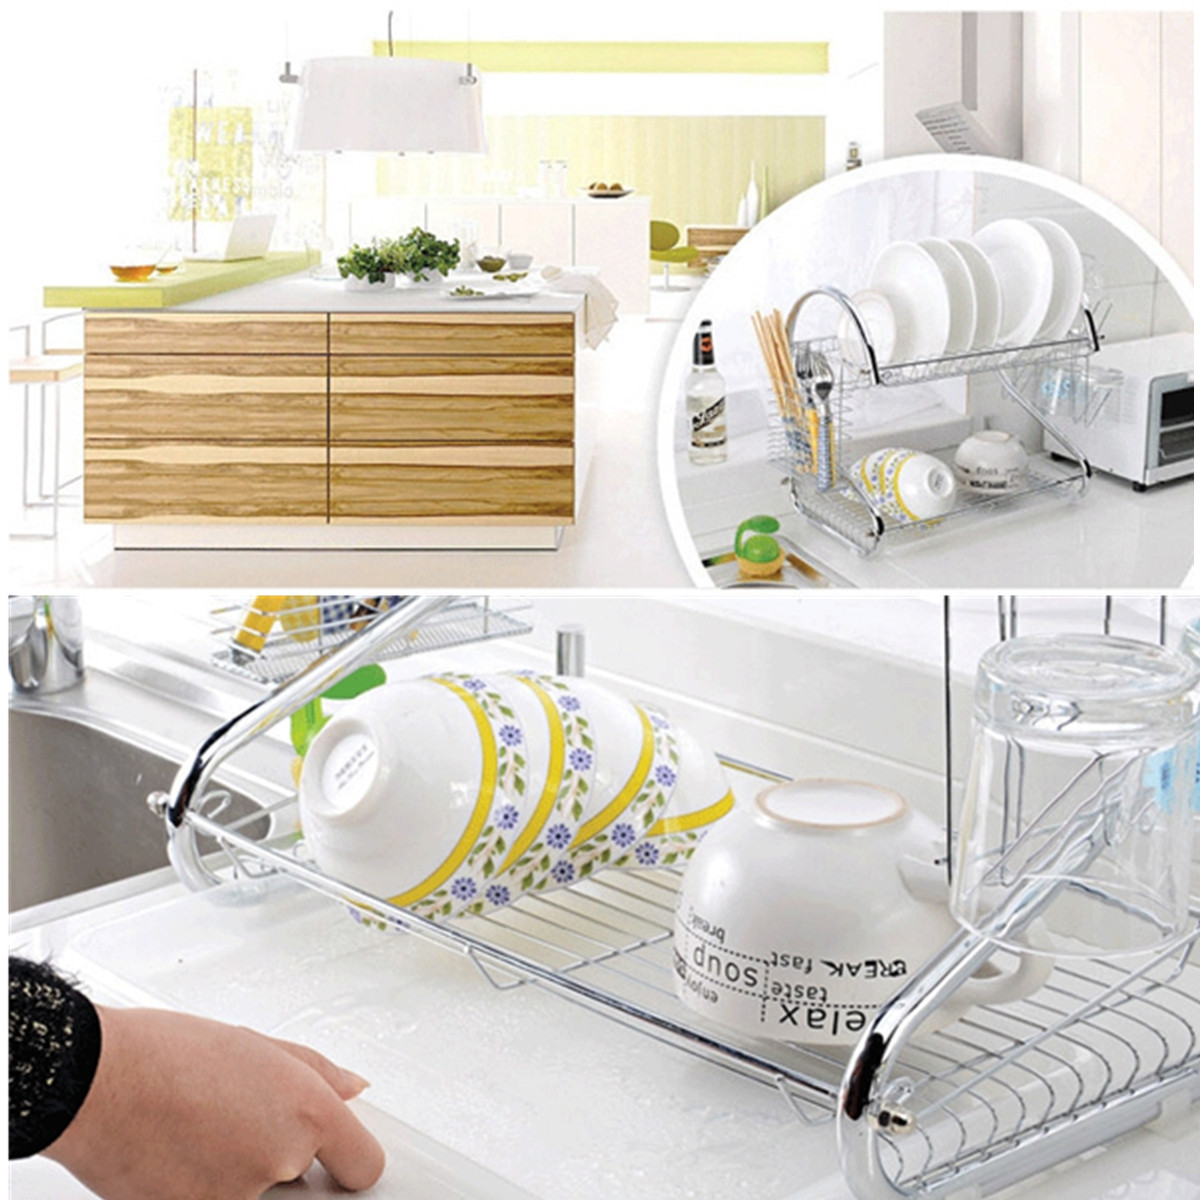 dish drying rack holder sshaped home kitchen bowl cup chopstick sink drainer 2 tier dryer stainless steel matcc us walmartcom